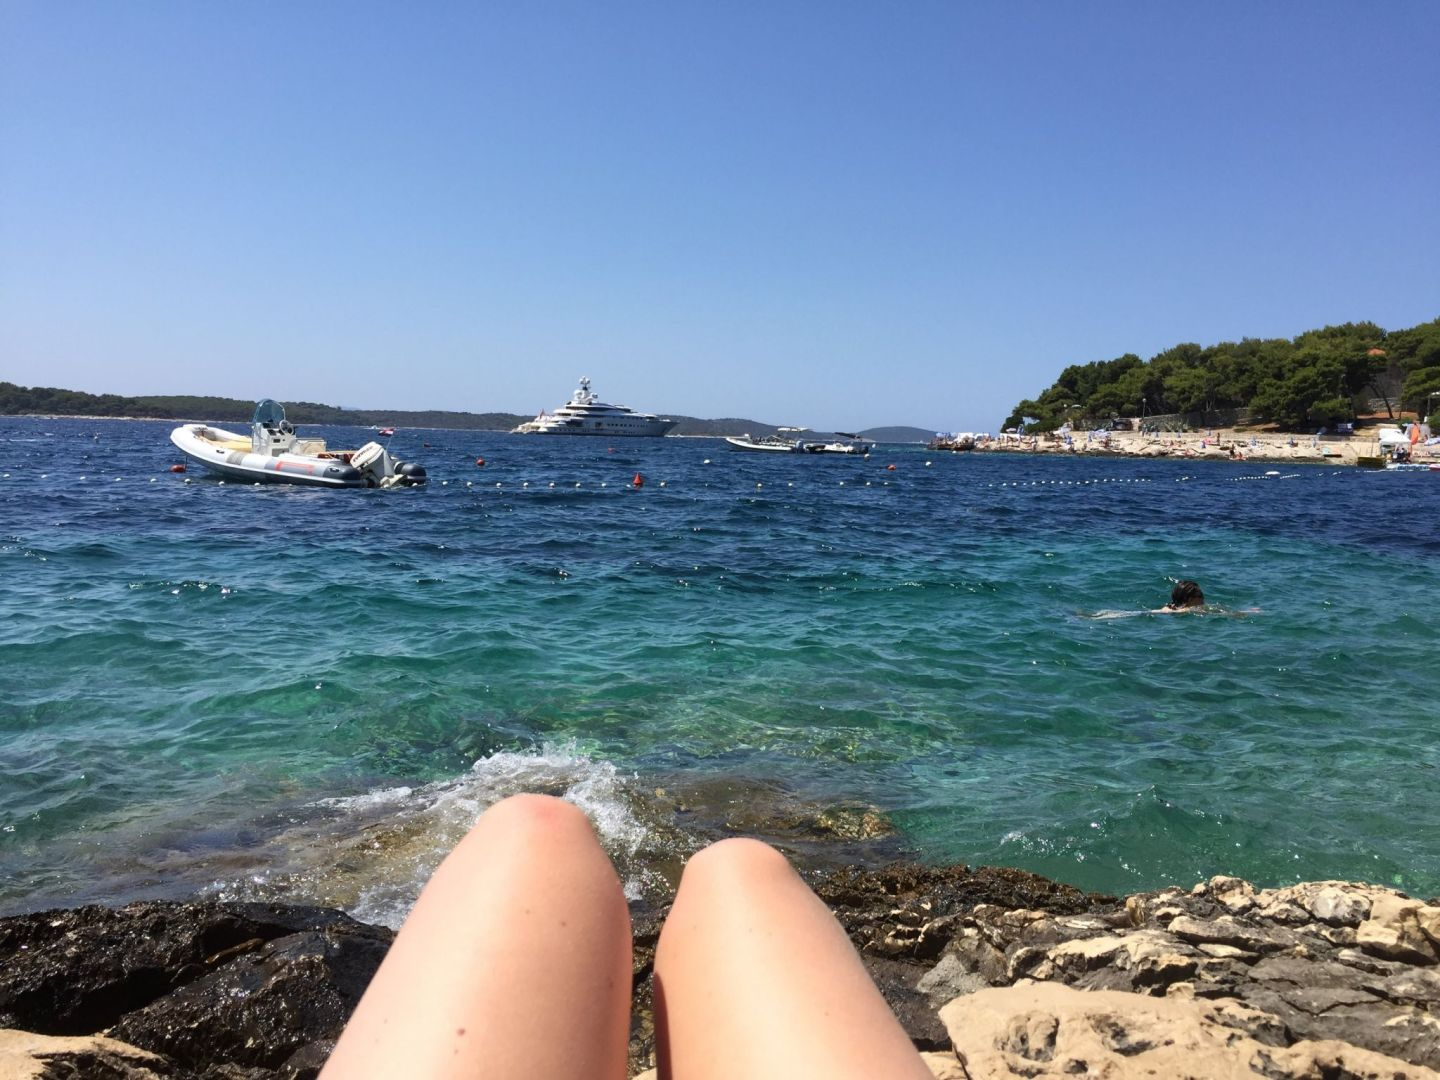 Sunbathing in Hvar, Croatia